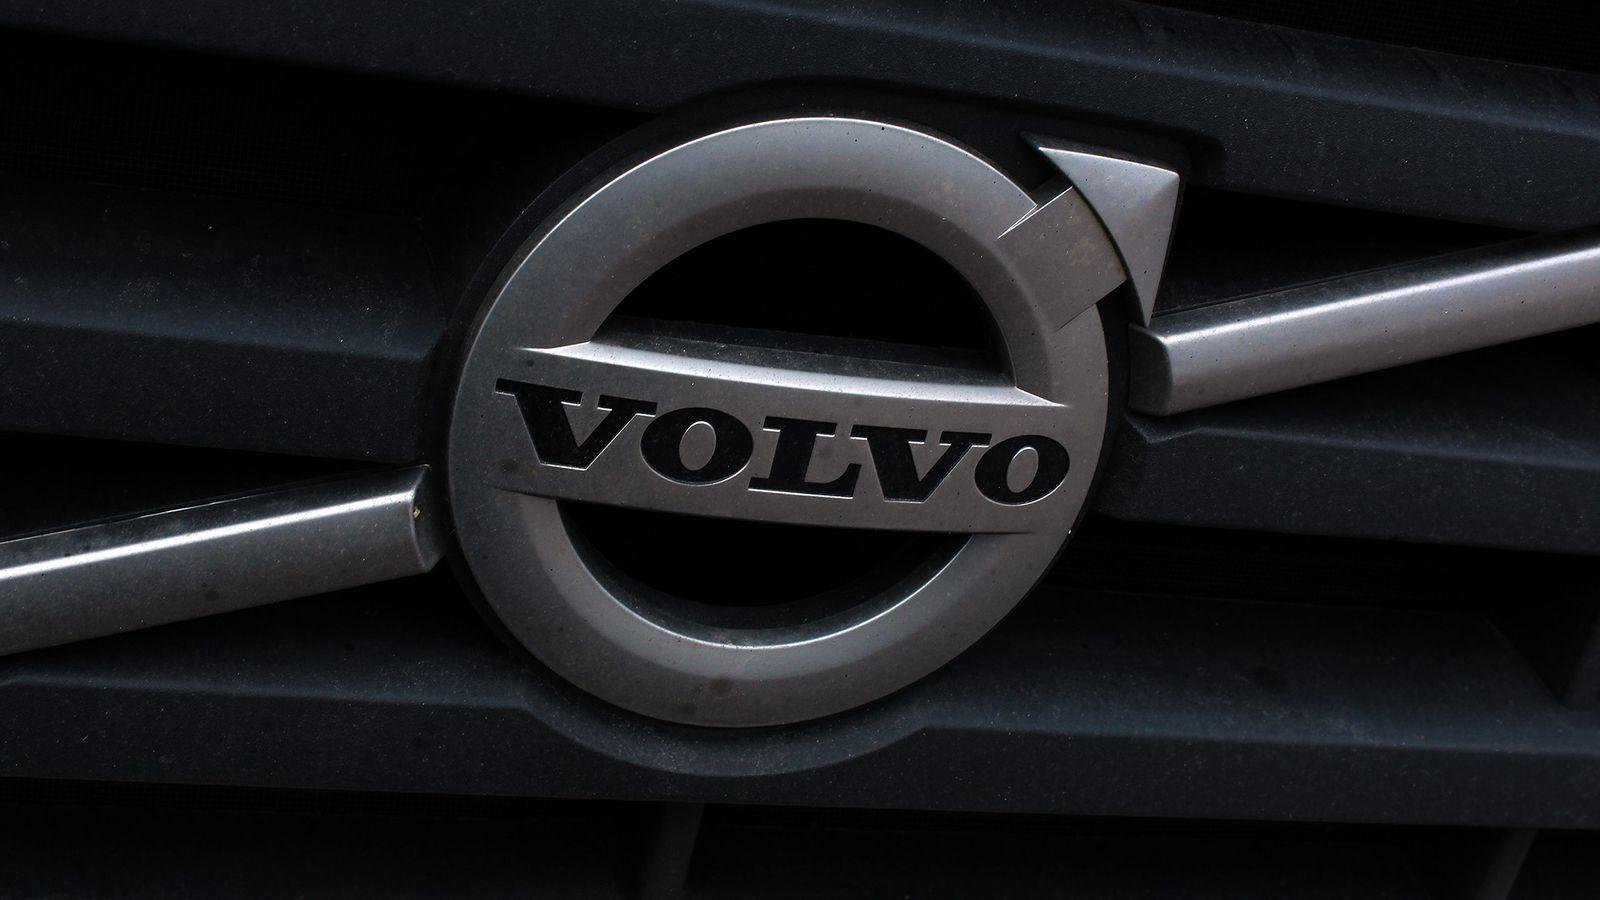 Volvo Truck Logo Wallpapers